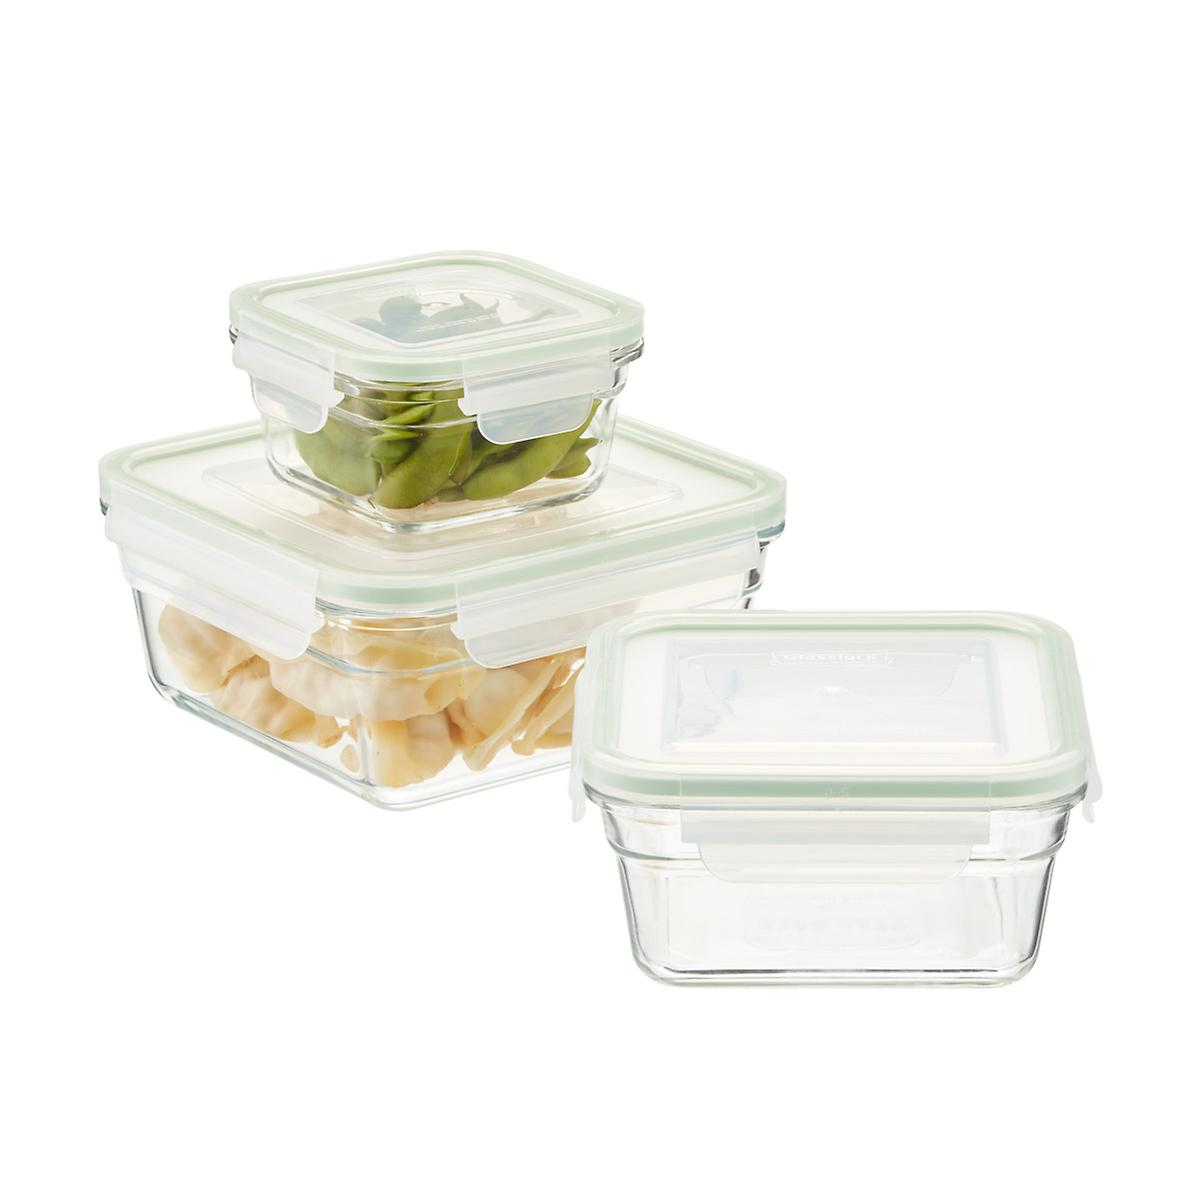 Glasslock Square Food Containers With Lids The Container